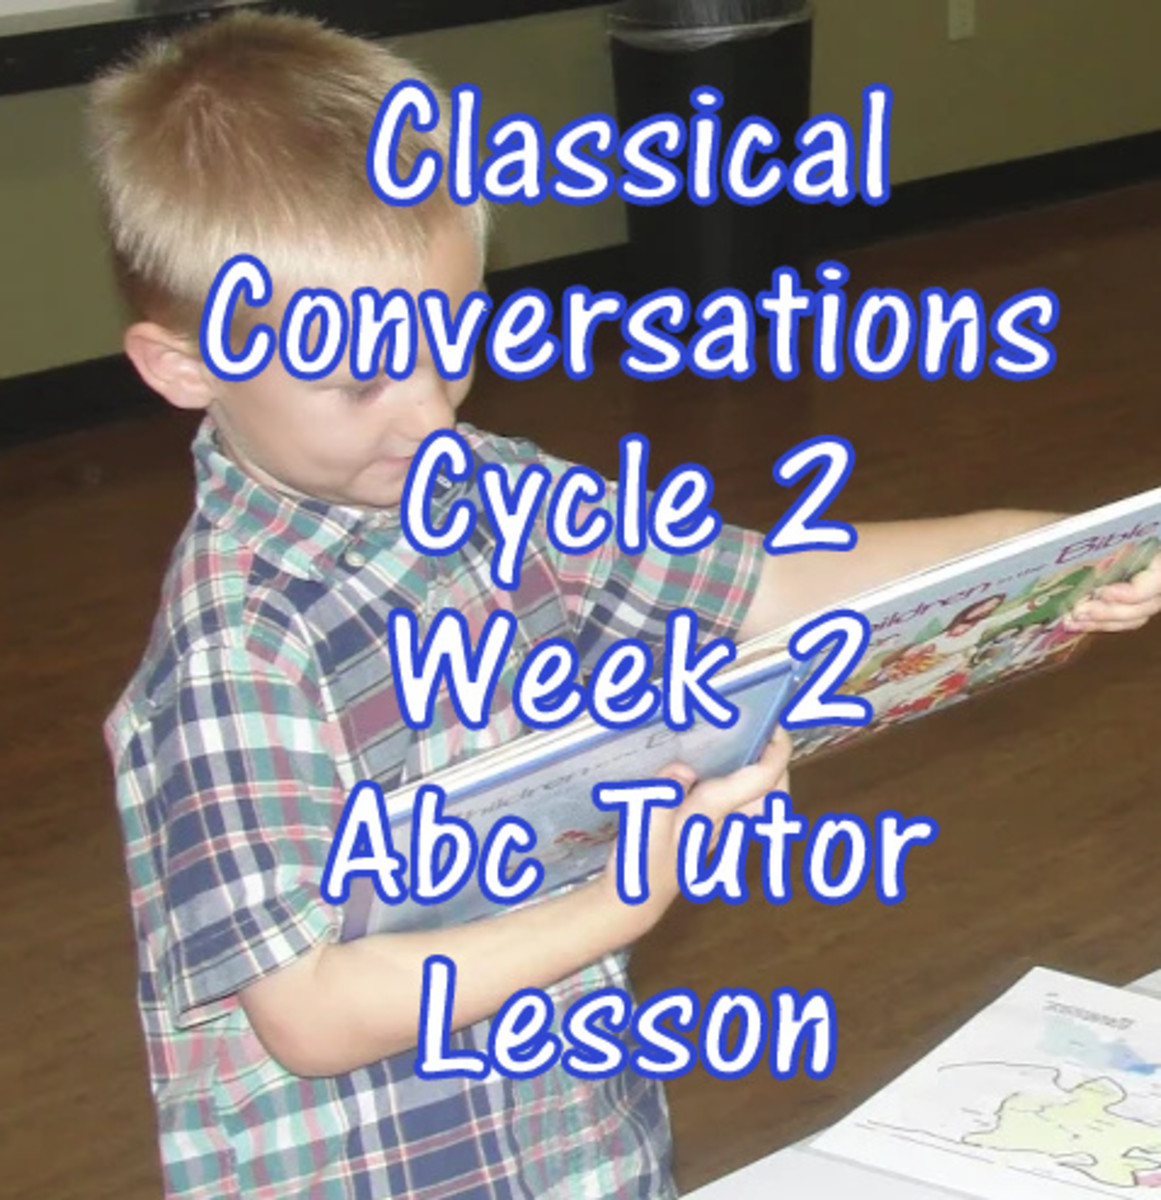 CC Cycle 2 Week 2 Lesson for Abecedarian Tutors